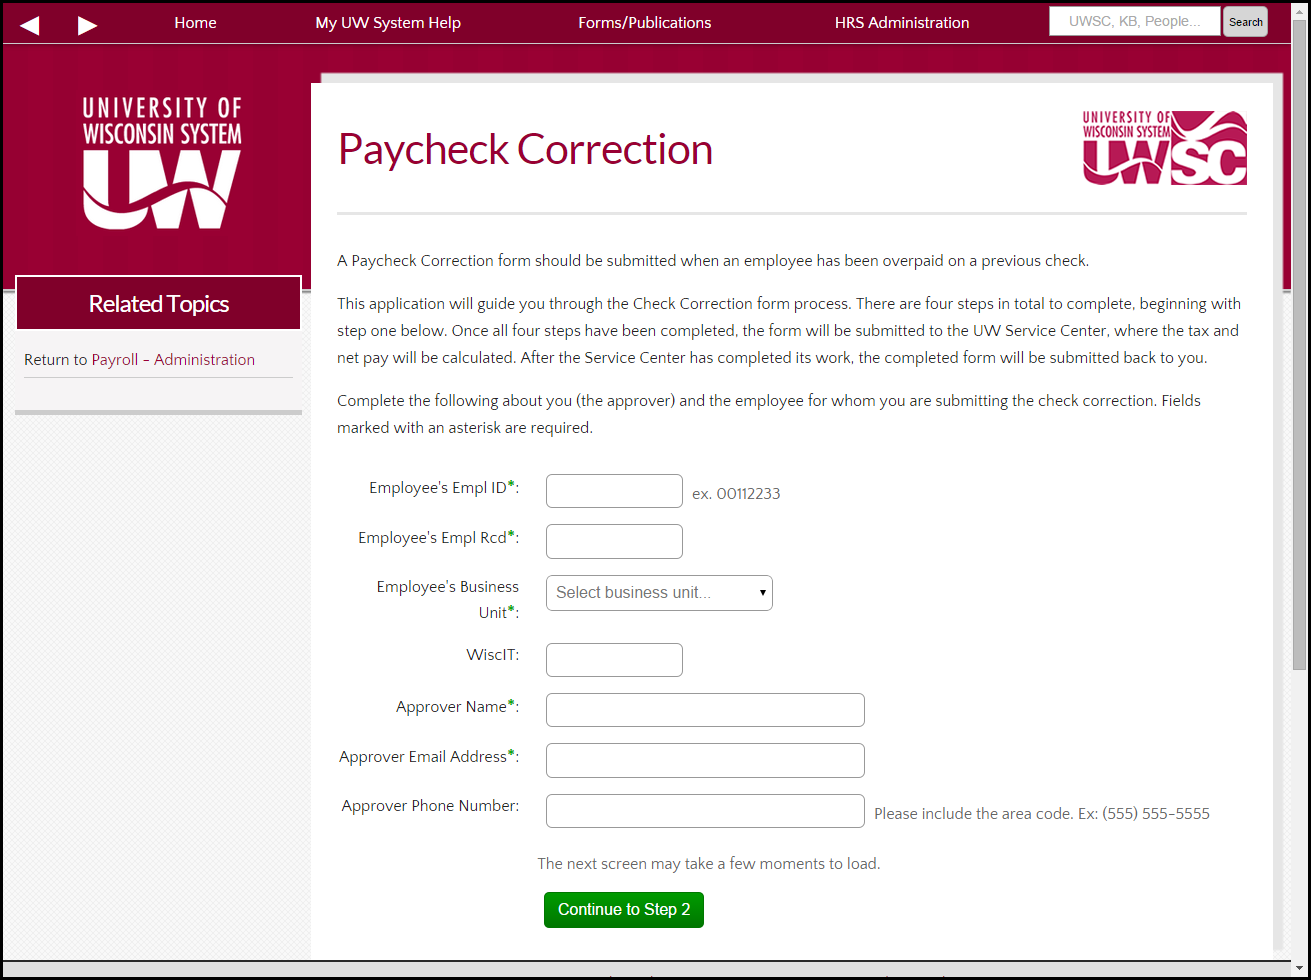 https://kb.wisc.edu/images/group426/27632/Step1_PaycheckCorrection.png